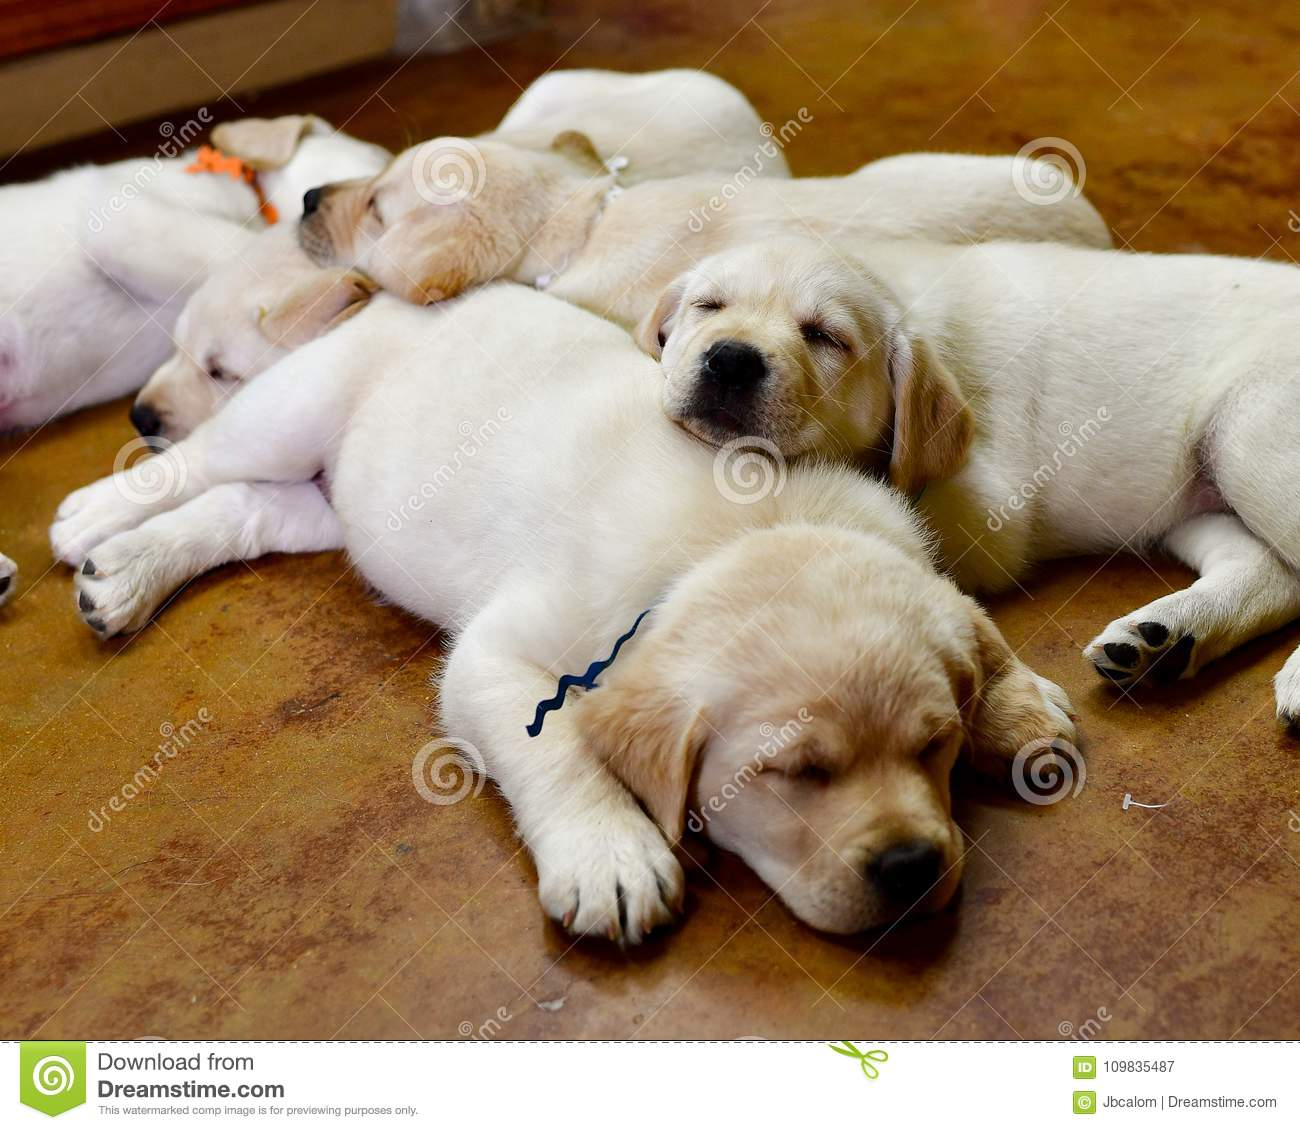 Seven Week Old Yellow Labrador Puppies Cuddling Together For Sleep